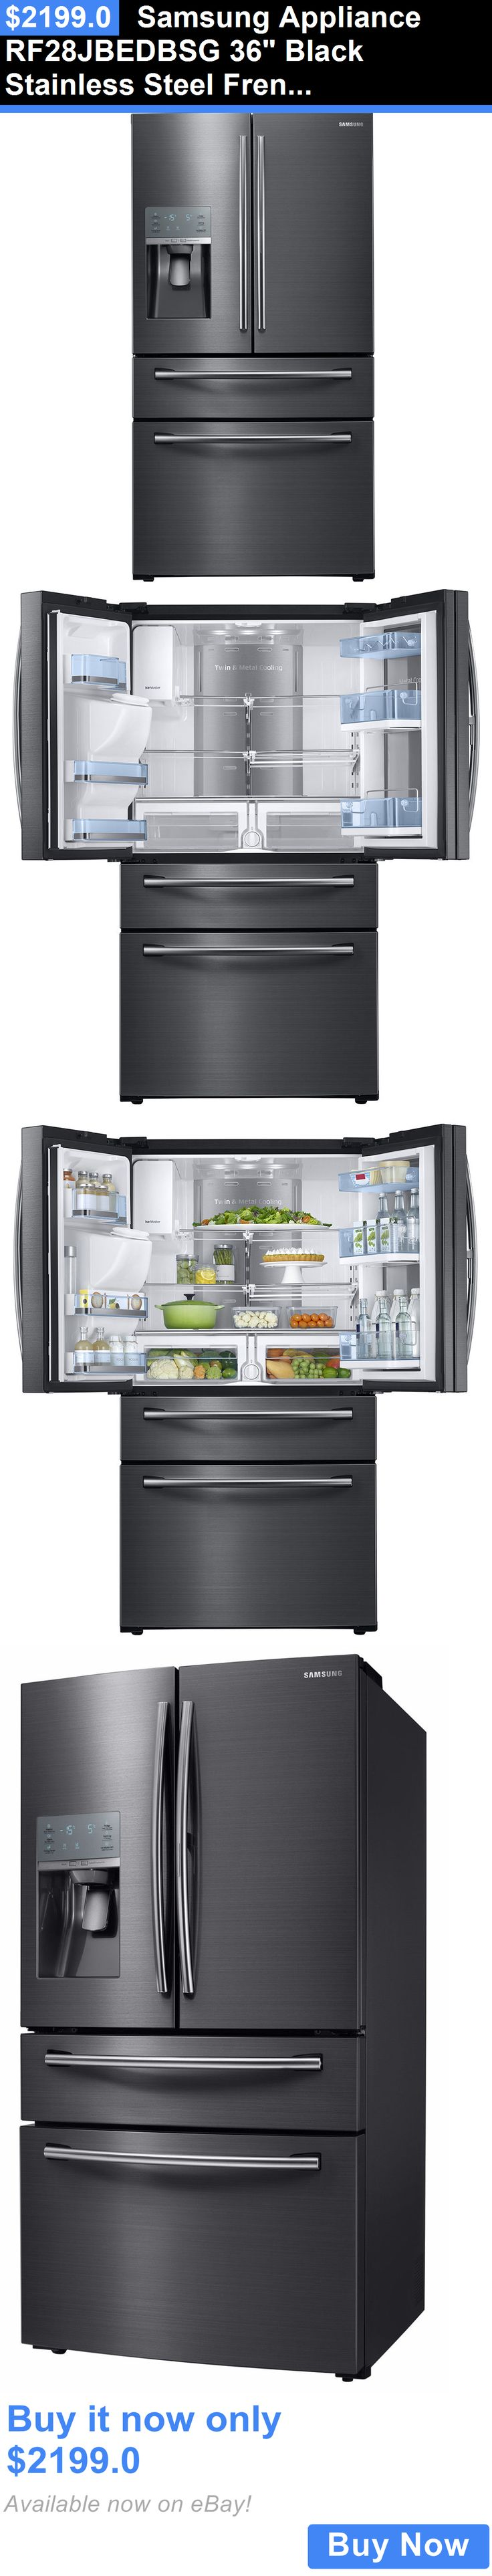 Kitchen small appliances edmonton - Major Appliances Samsung Appliance Rf28jbedbsg 36 Black Stainless Steel French Door Refrigerator Buy It Now